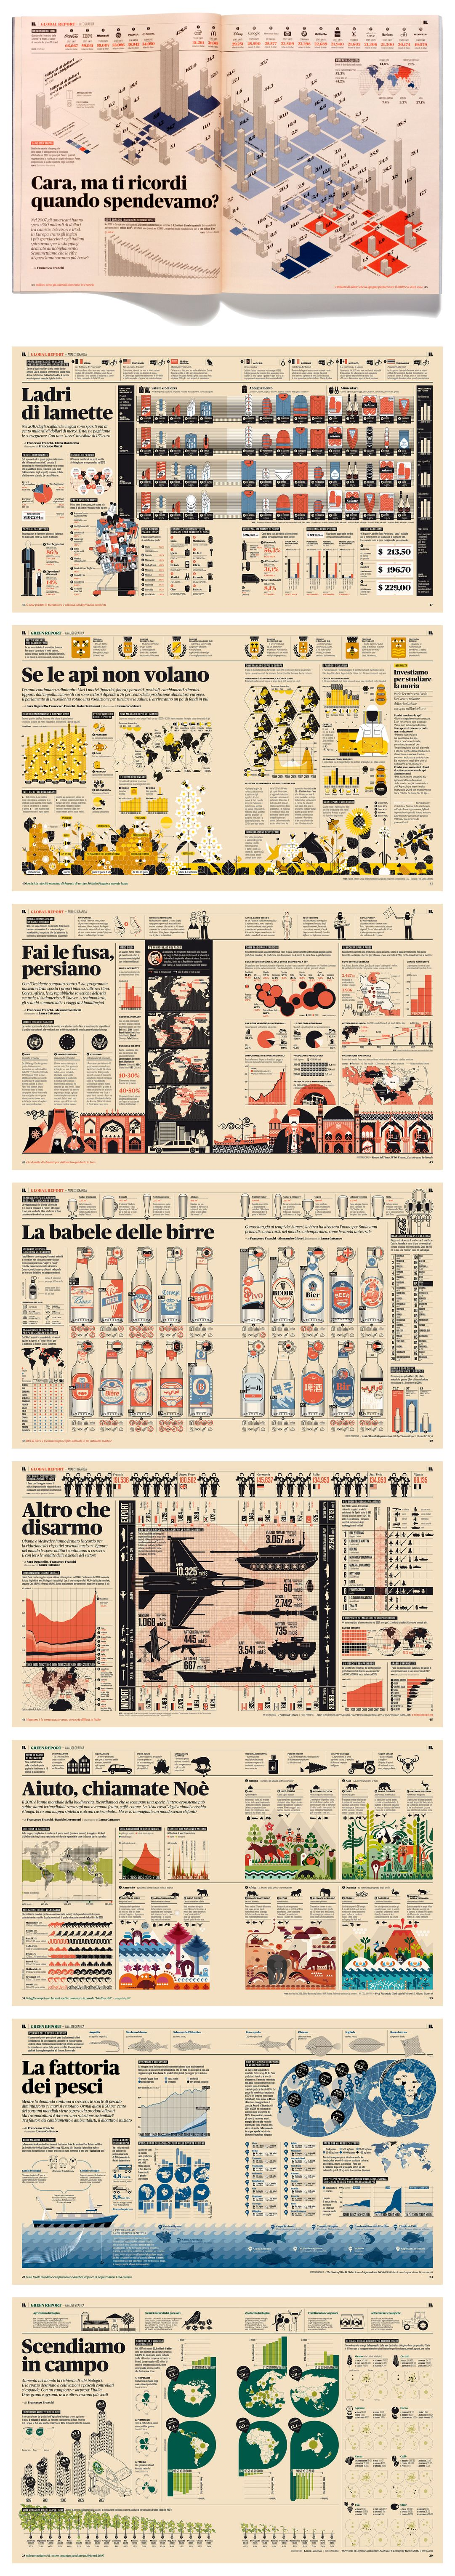 Analisi Grafica Published every month on IL – Intelligence in lifestyle http://www.francescofranchi.com/projects/infographics